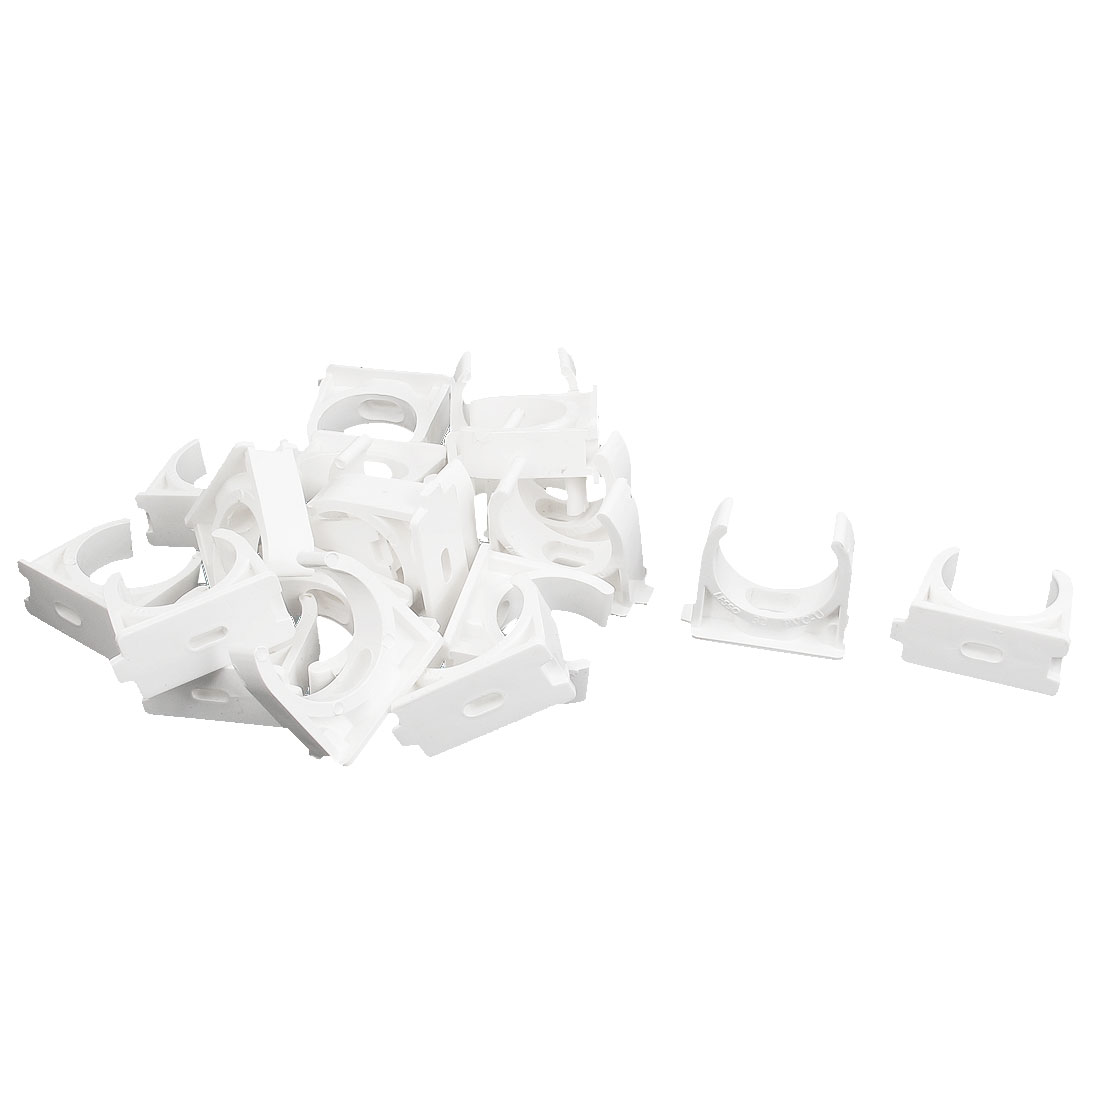 PVC Multi Function Pipe Clamps Clips Preloaded Nail White 32mm Diameter 21 Pcs